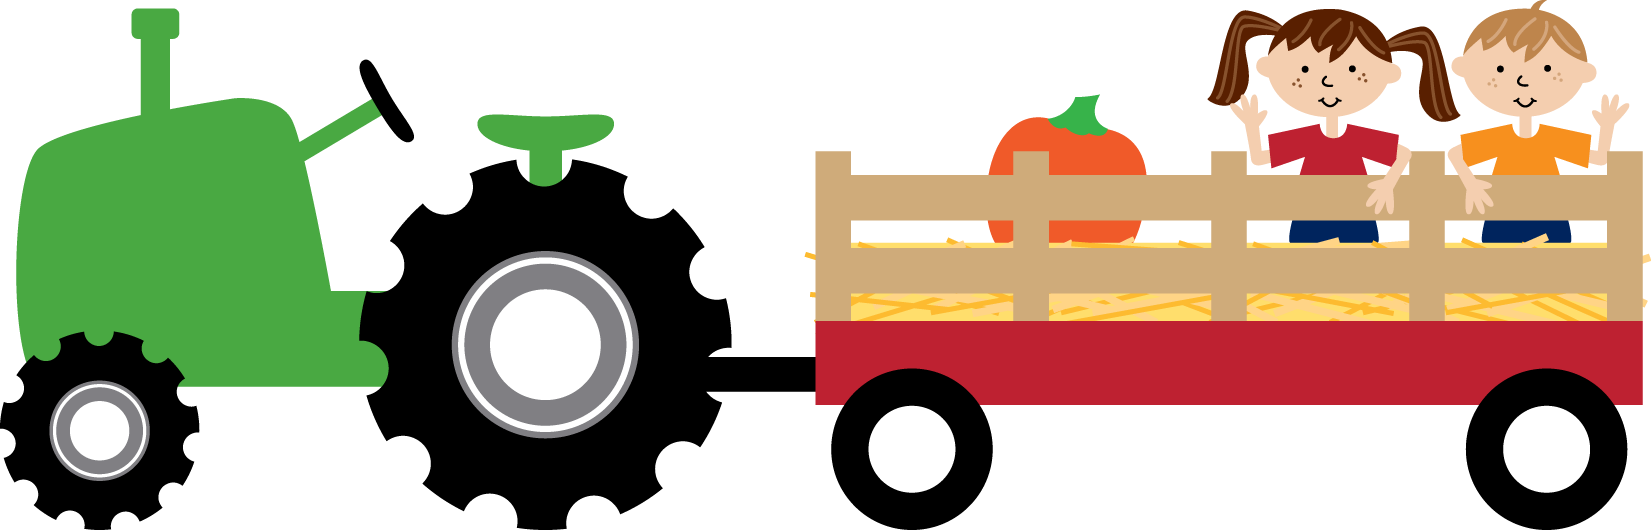 Hayride free download best. Wagon clipart cute